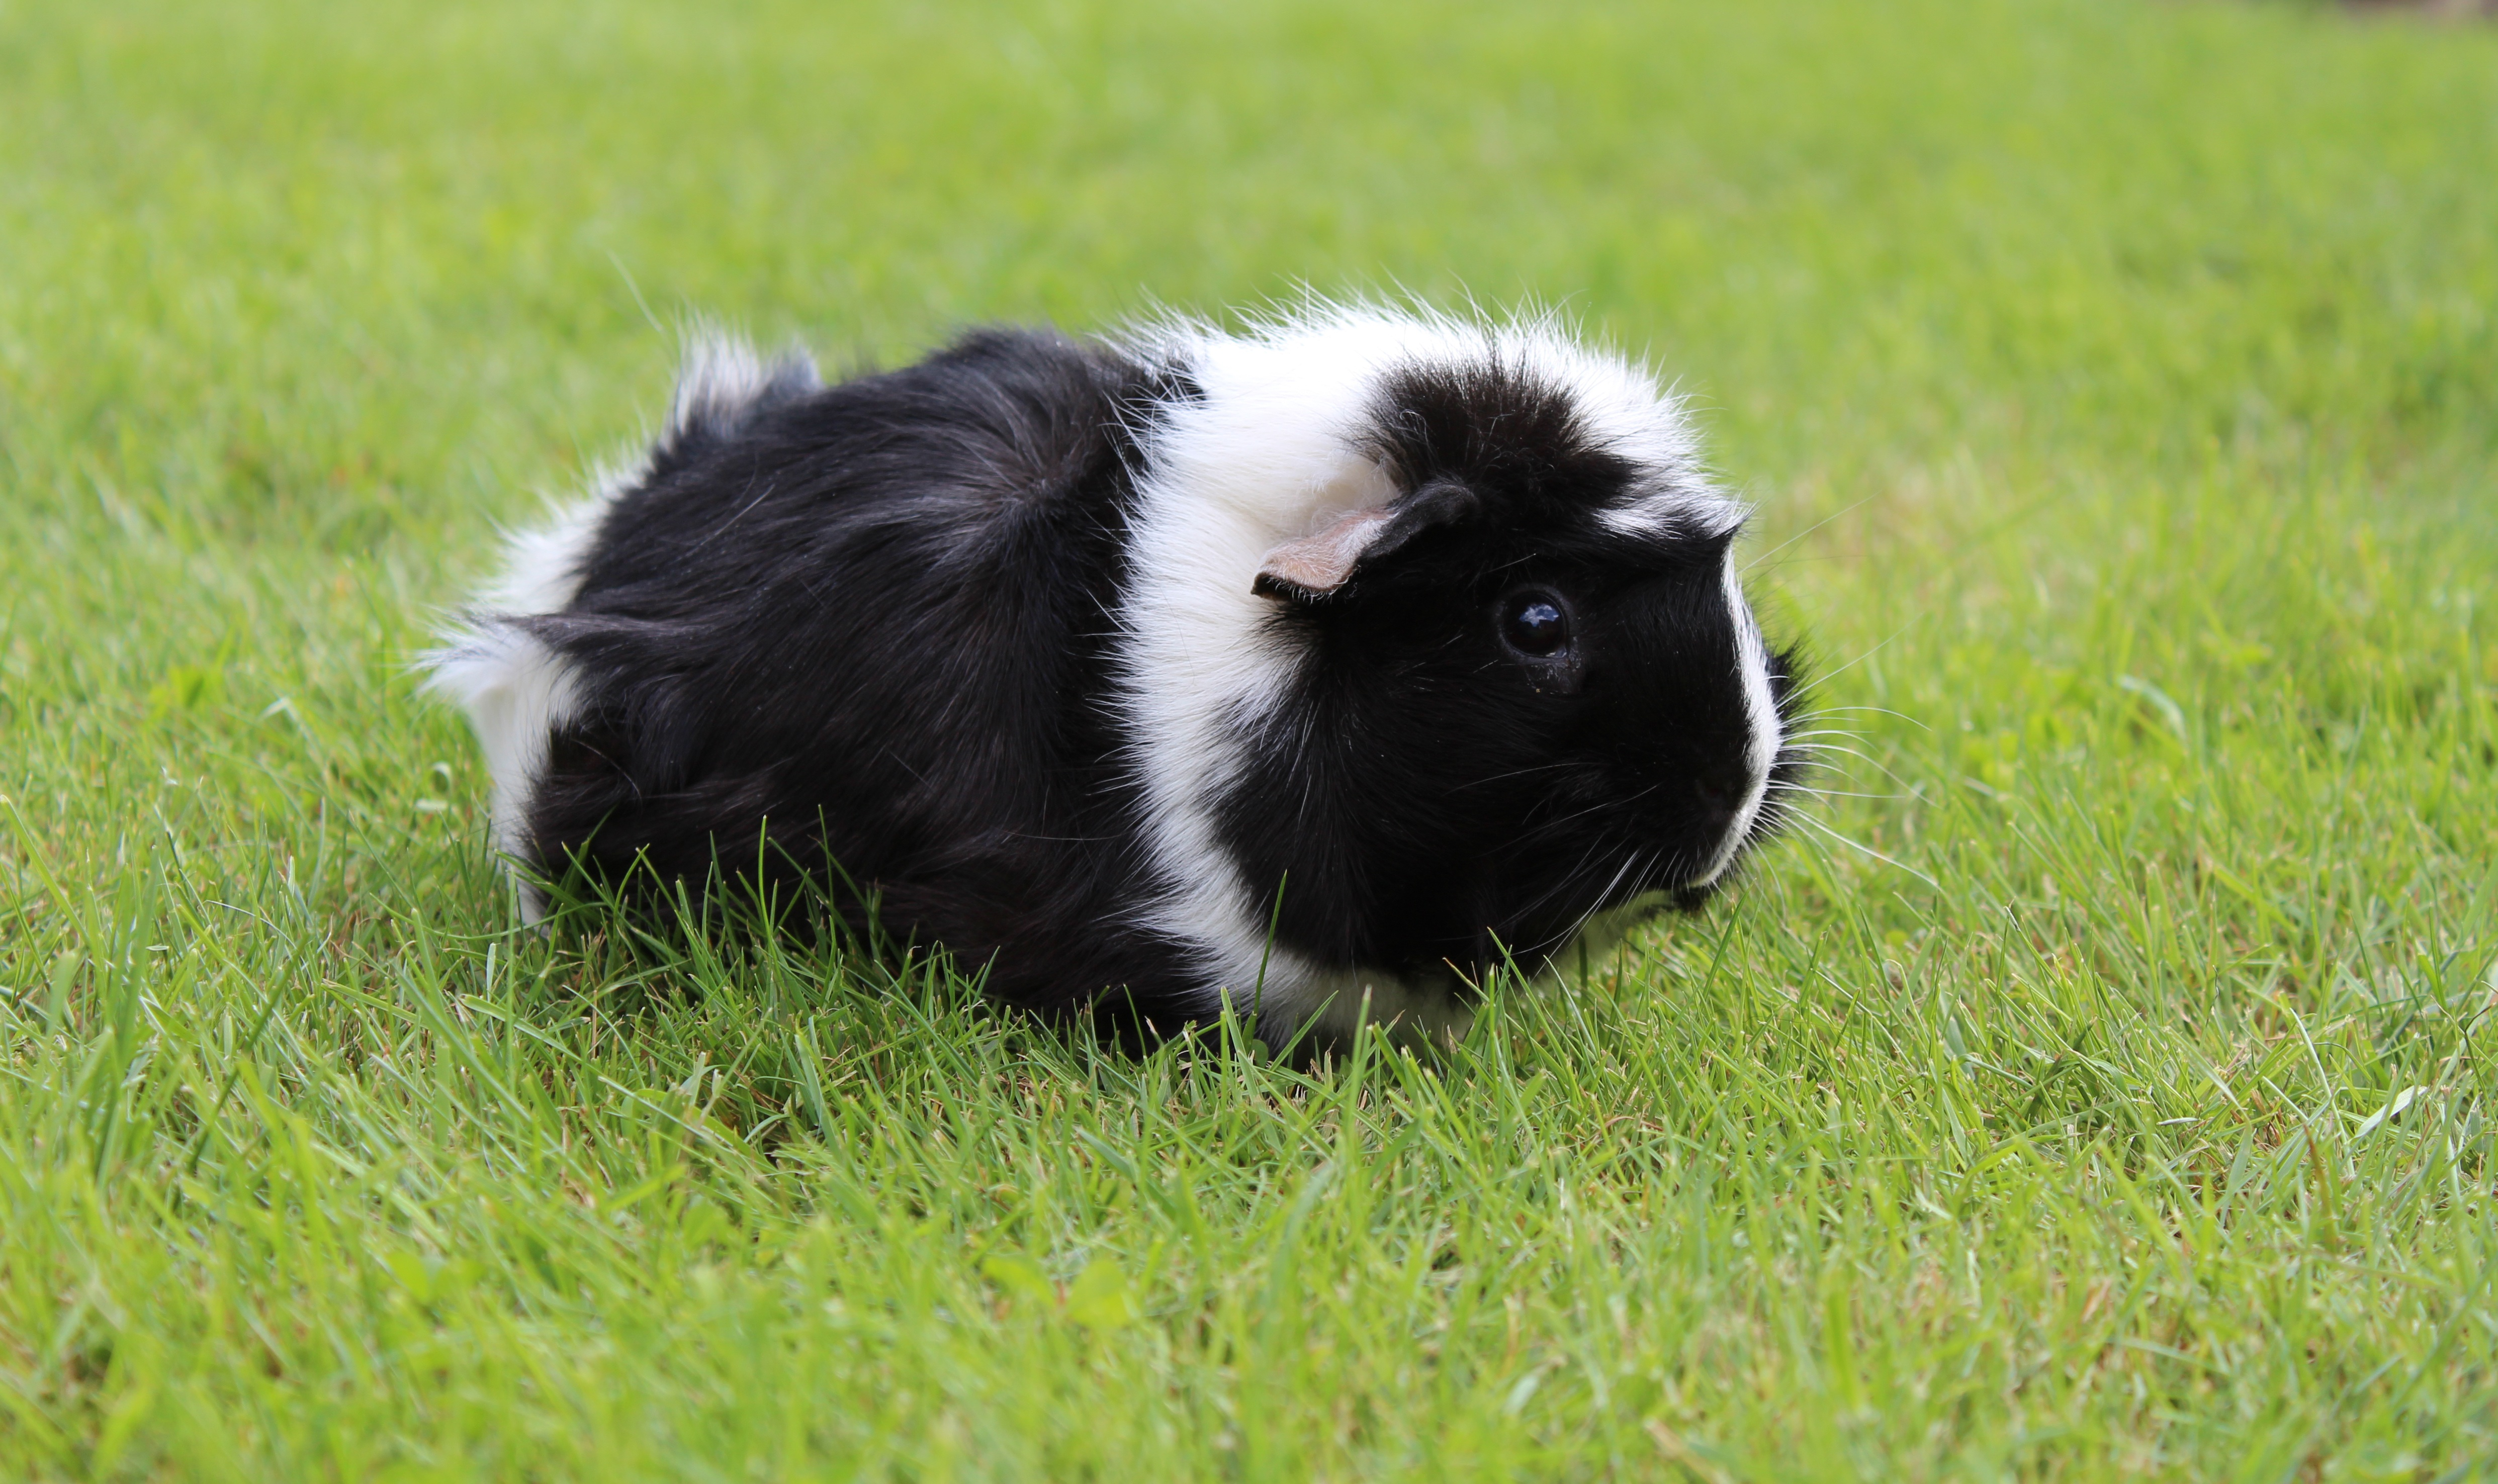 61866 download wallpaper Animals, Guinea Pig, Grass, Stroll, Rodent, Shaggy screensavers and pictures for free